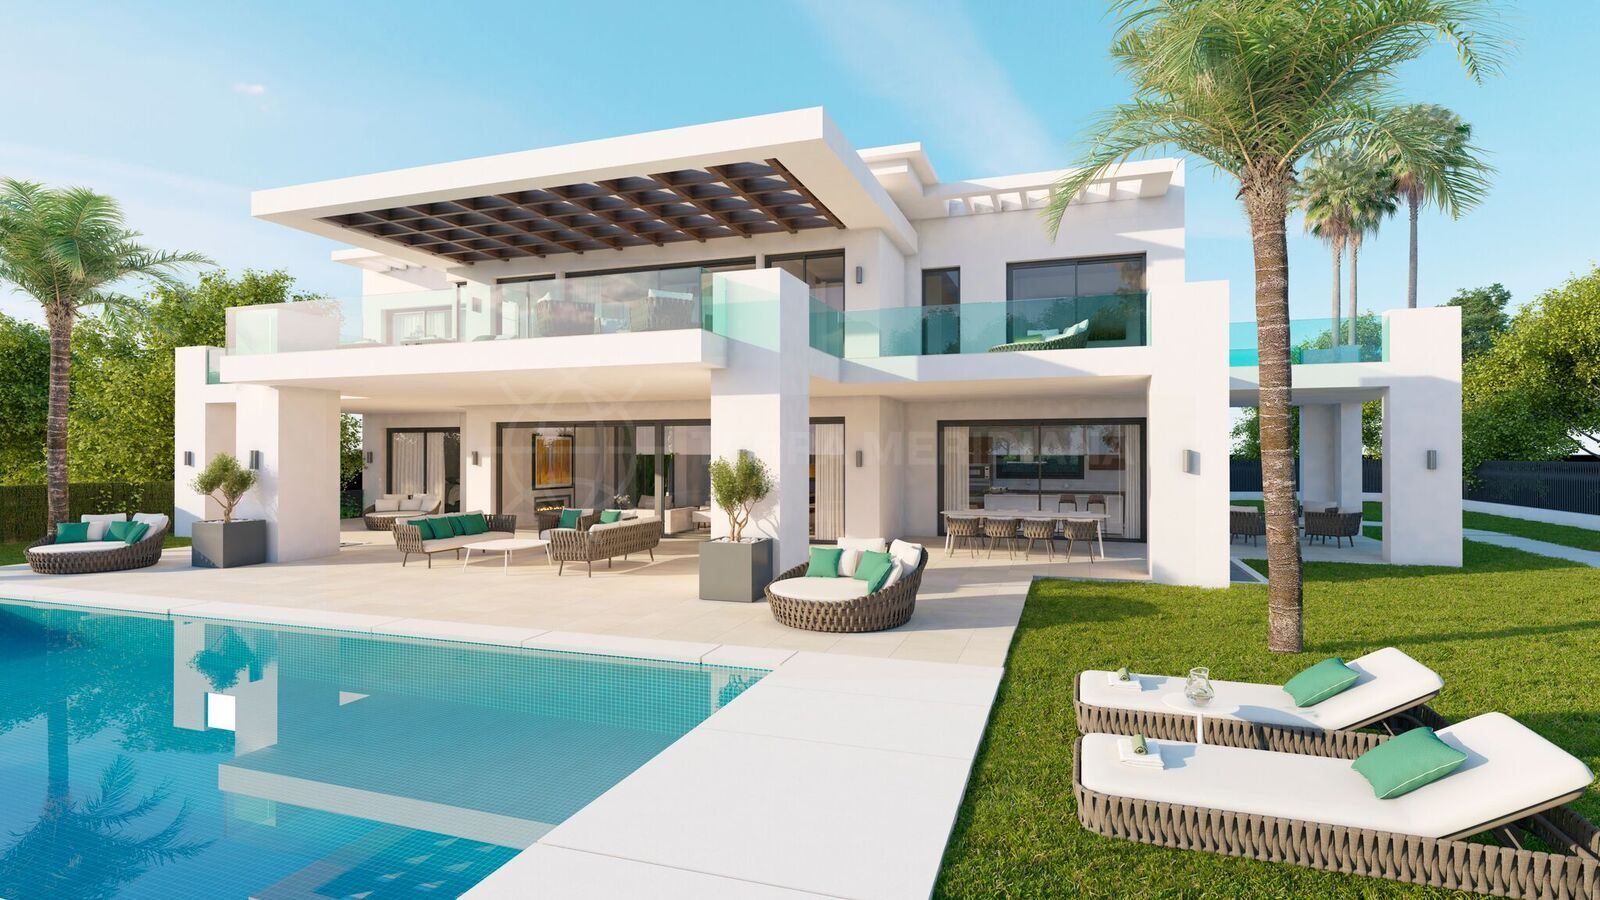 Newbuild contemporary villa for sale with pool and